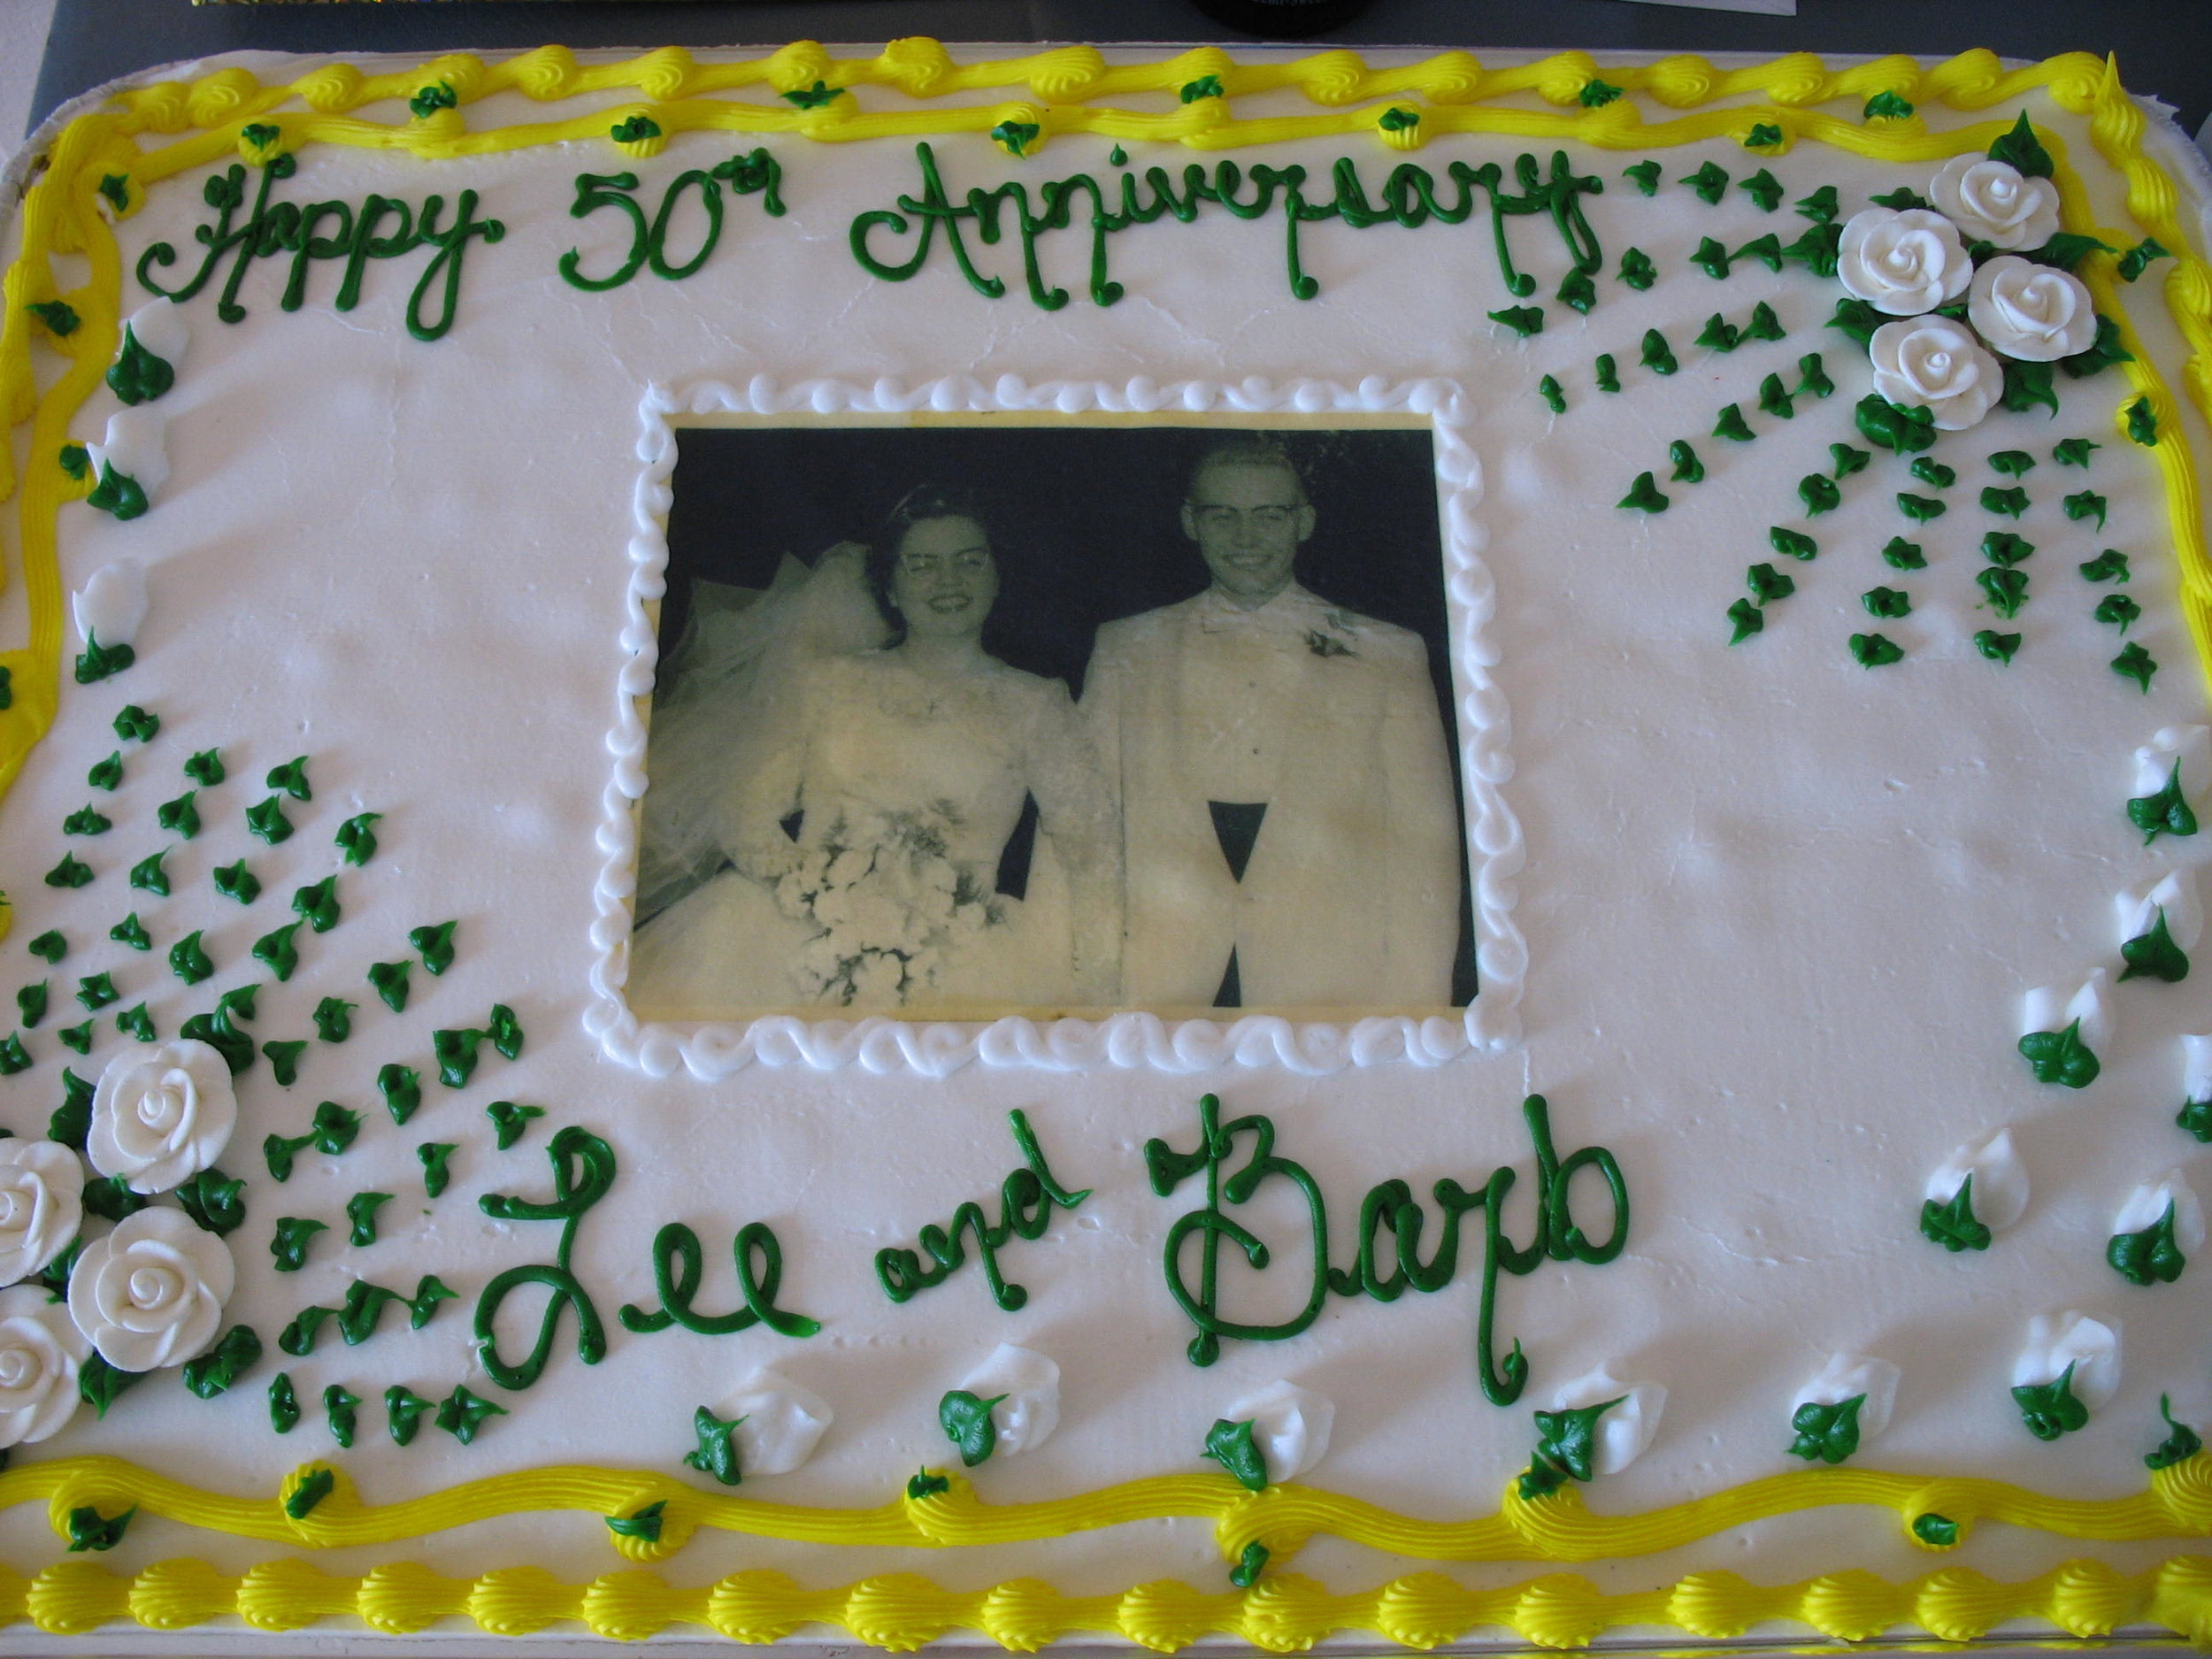 From their 50th wedding anniversary party - August 2007